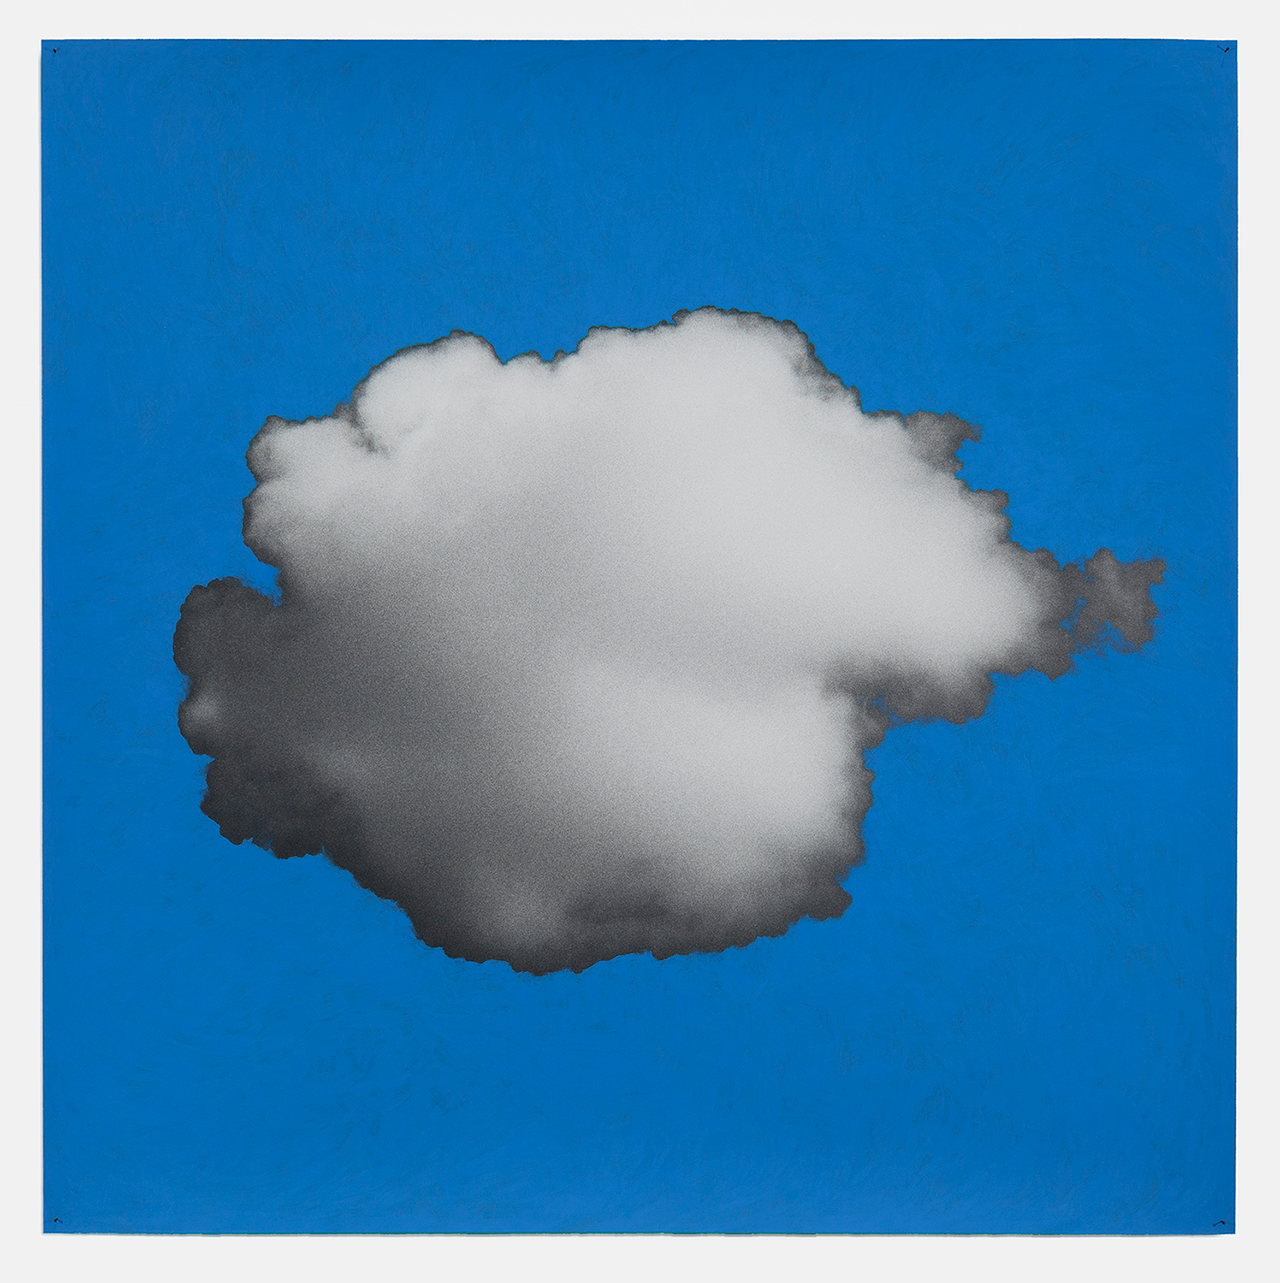 """Tacita Dean, """"Sean's Cloud"""" (2016), chalkboard paint on hand-printed silver gelatin photograph mounted on paper, 39 5/16 x 39 5/16 in (all images courtesy Marian Goodman Gallery)"""